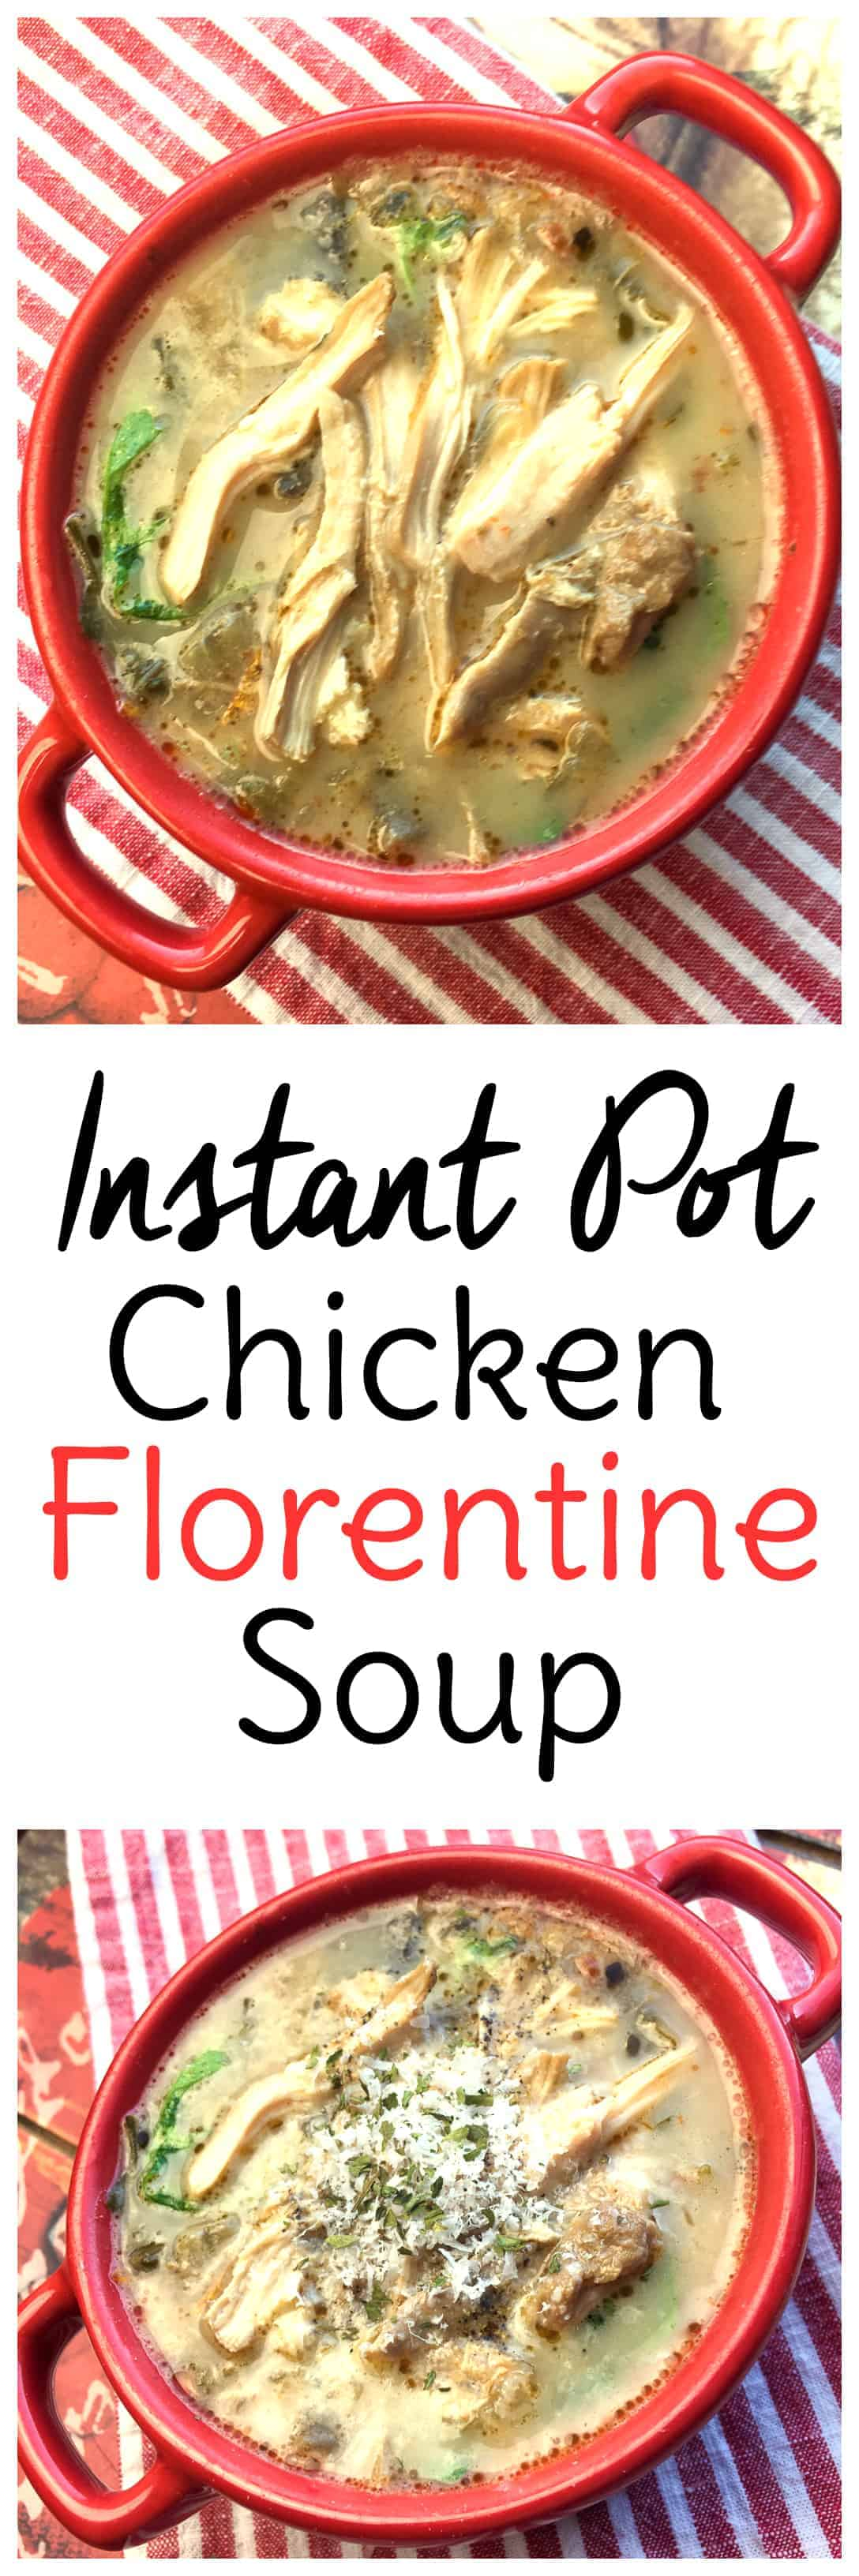 This Instant Pot chicken soup is a some of the best comfort food you'll enjoy this season. #instantpot #chickensoup